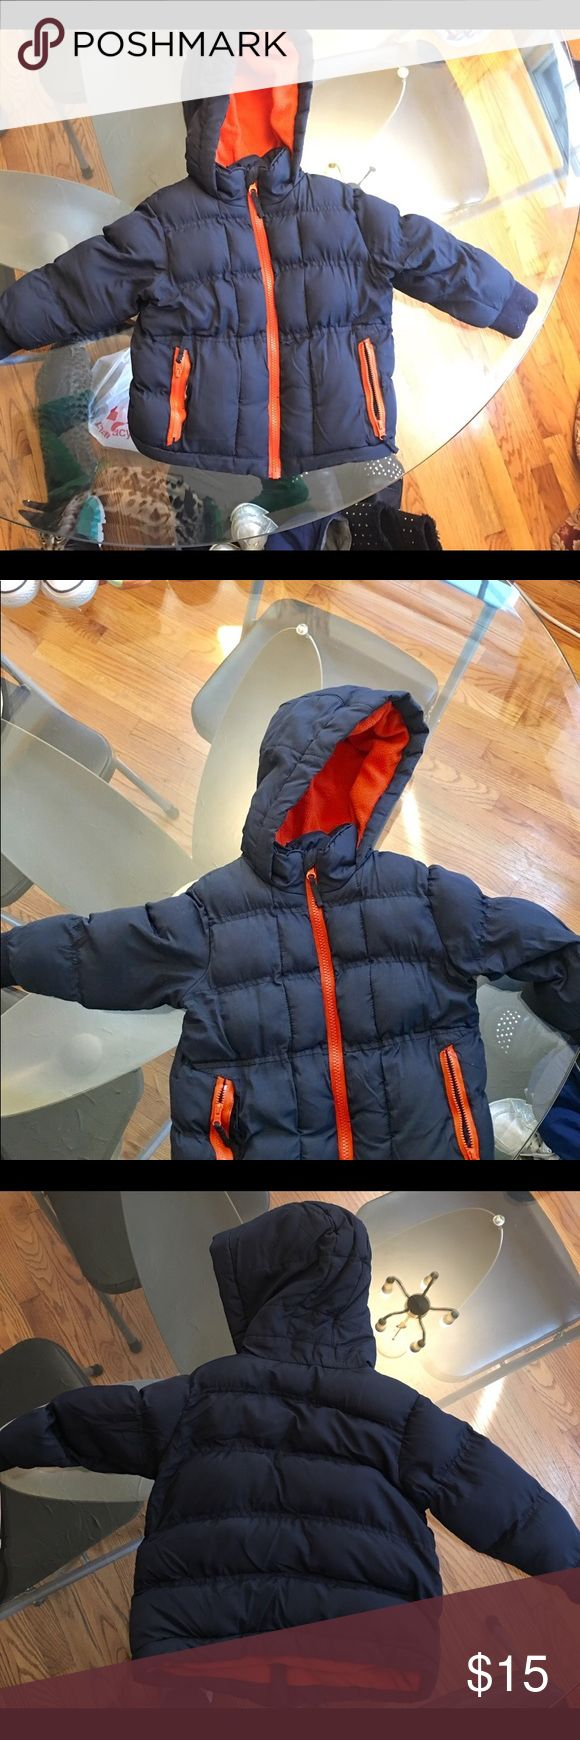 Toddler boys winter coat Toddler boys winter puffer coat with a tear on one of the pockets Children's Place Jackets & Coats Puffers